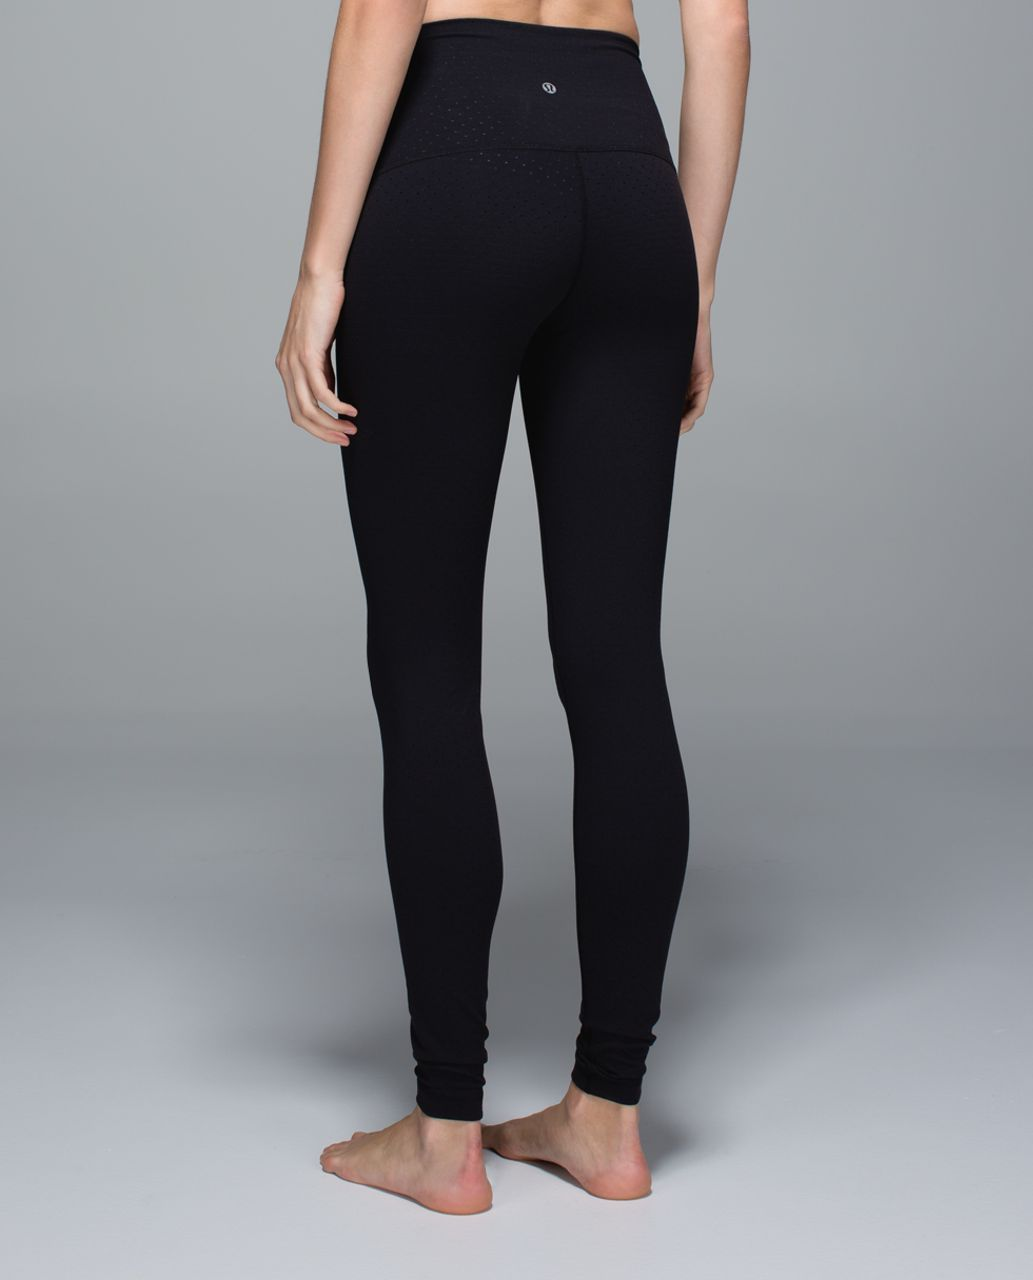 Lululemon Wunder Under Pant *Full-On Luon (Roll Down) - Shine Dot Black